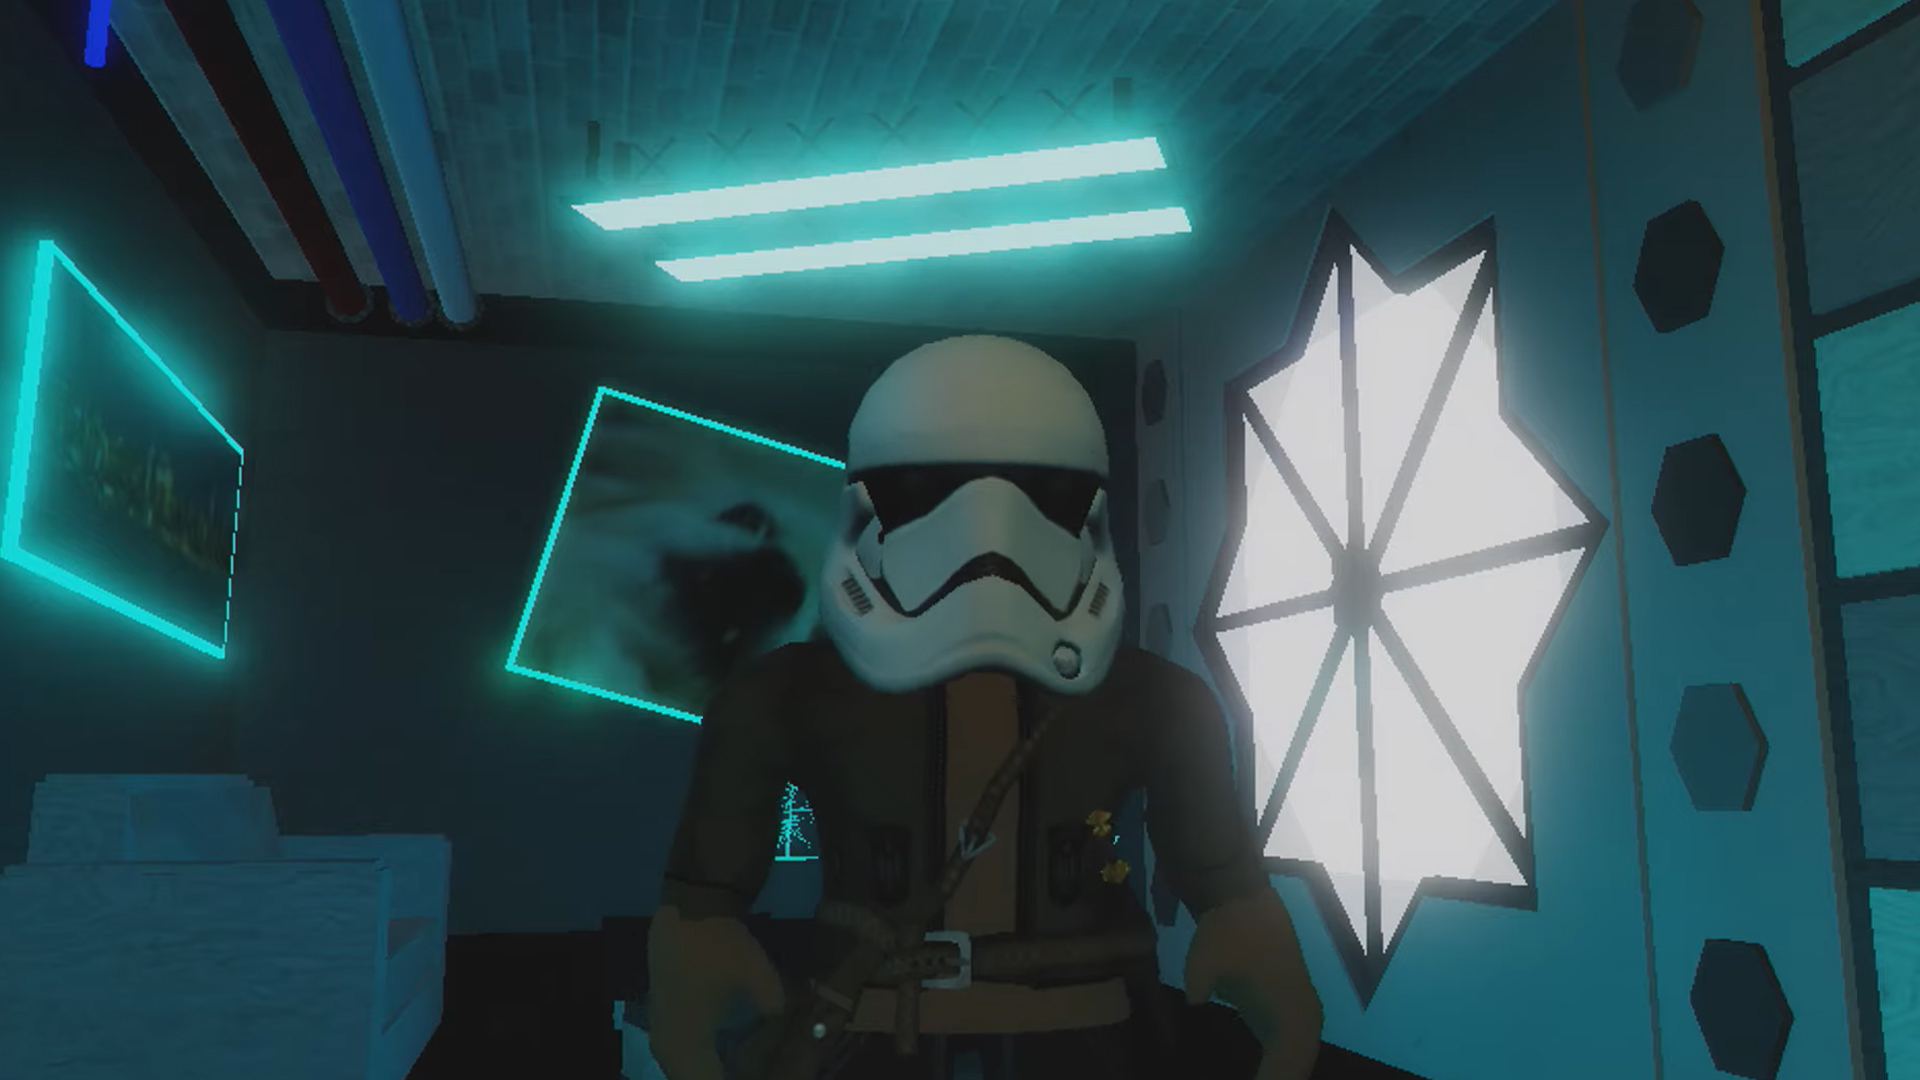 Star Wars officially comes to Roblox | PCGamesN